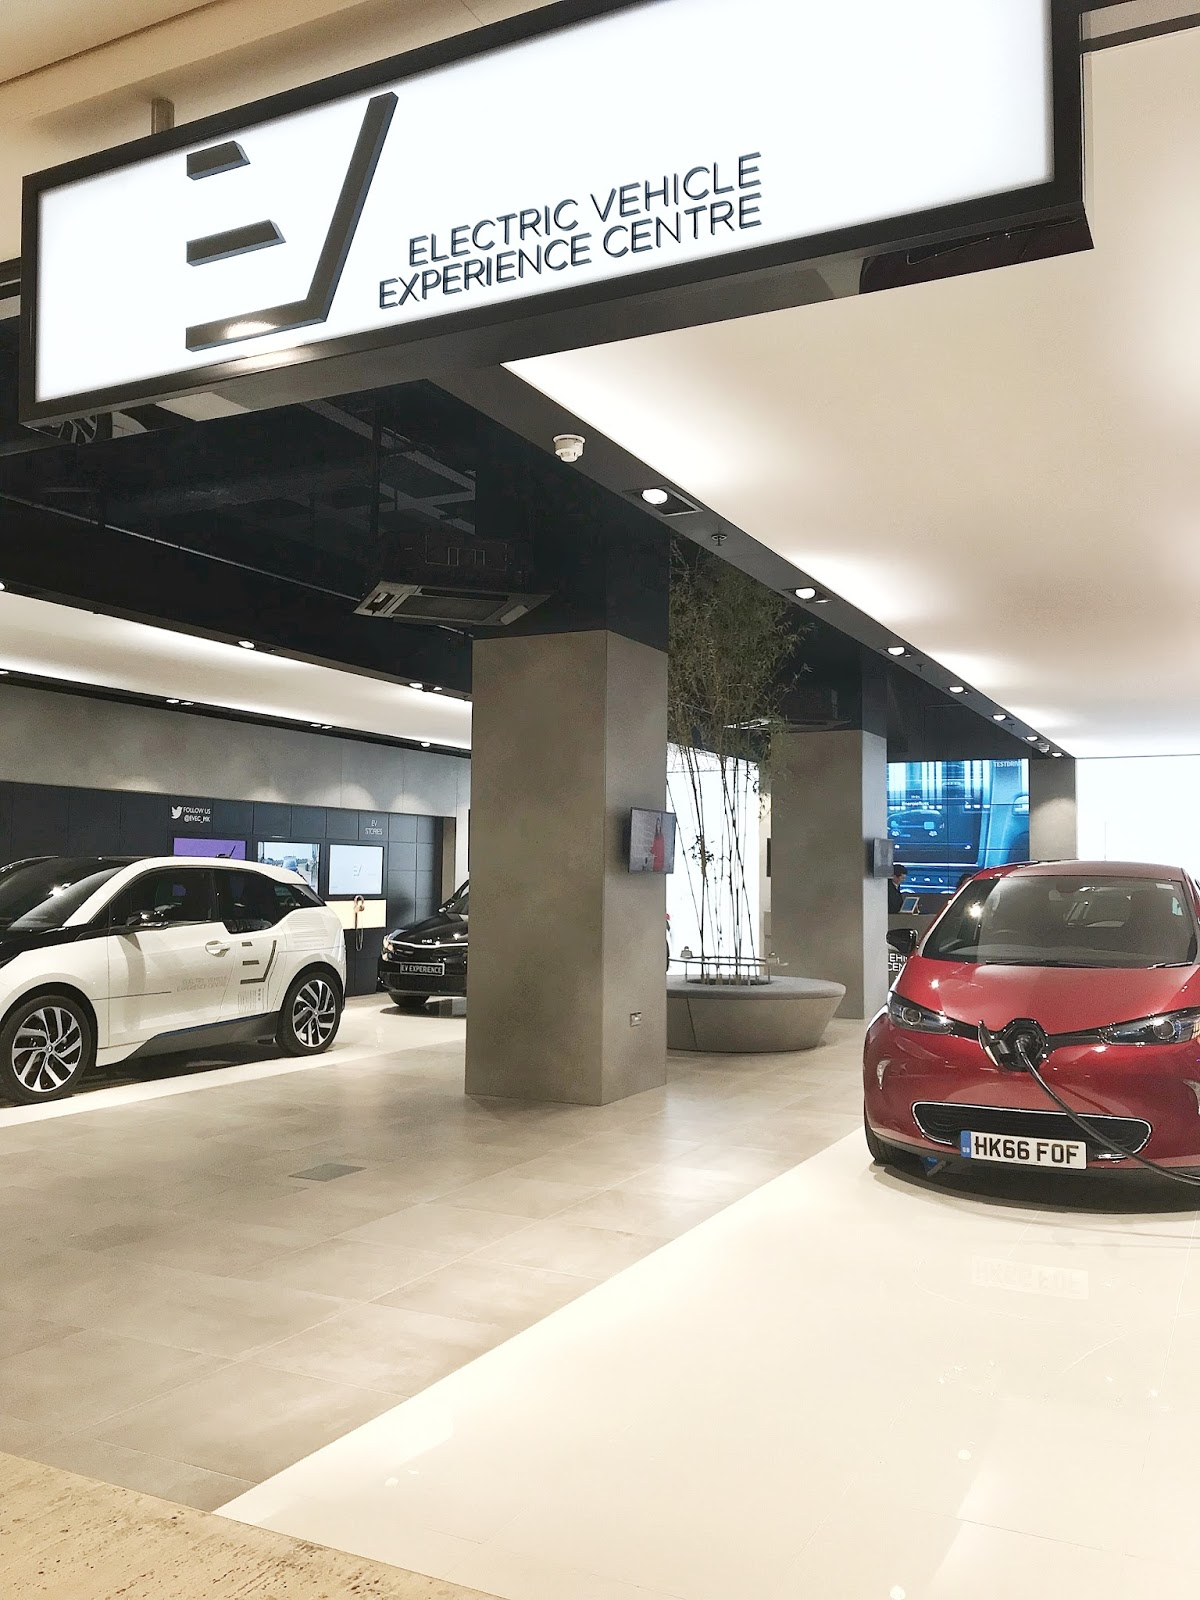 Electric Vehicle Experience Centre Milton Keynes